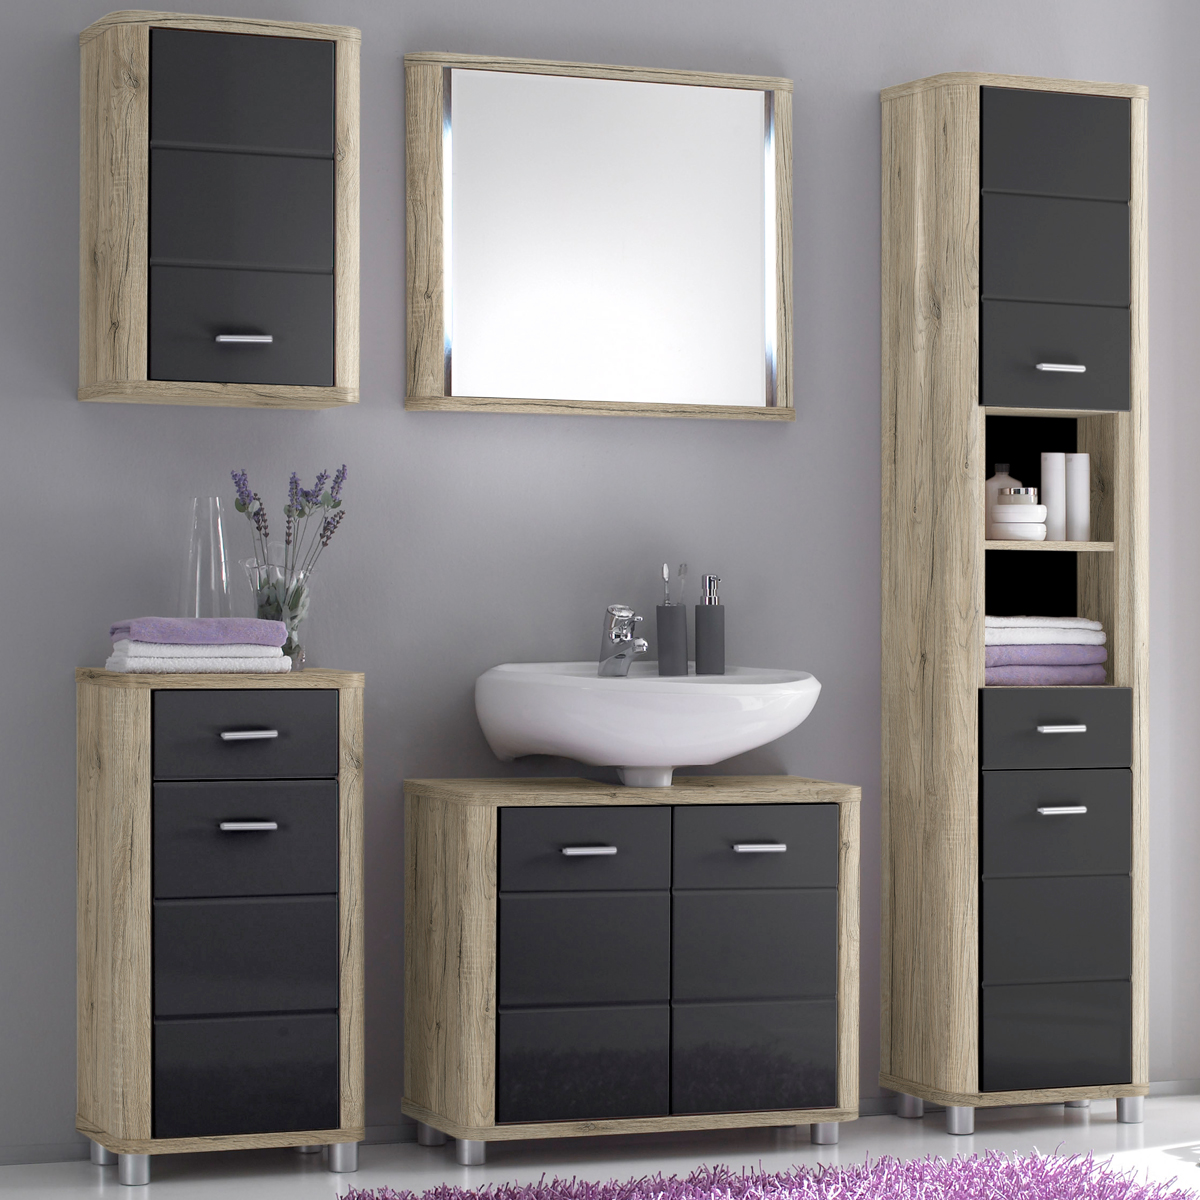 badezimmer vital bad kommode hochschrank unterschrank. Black Bedroom Furniture Sets. Home Design Ideas